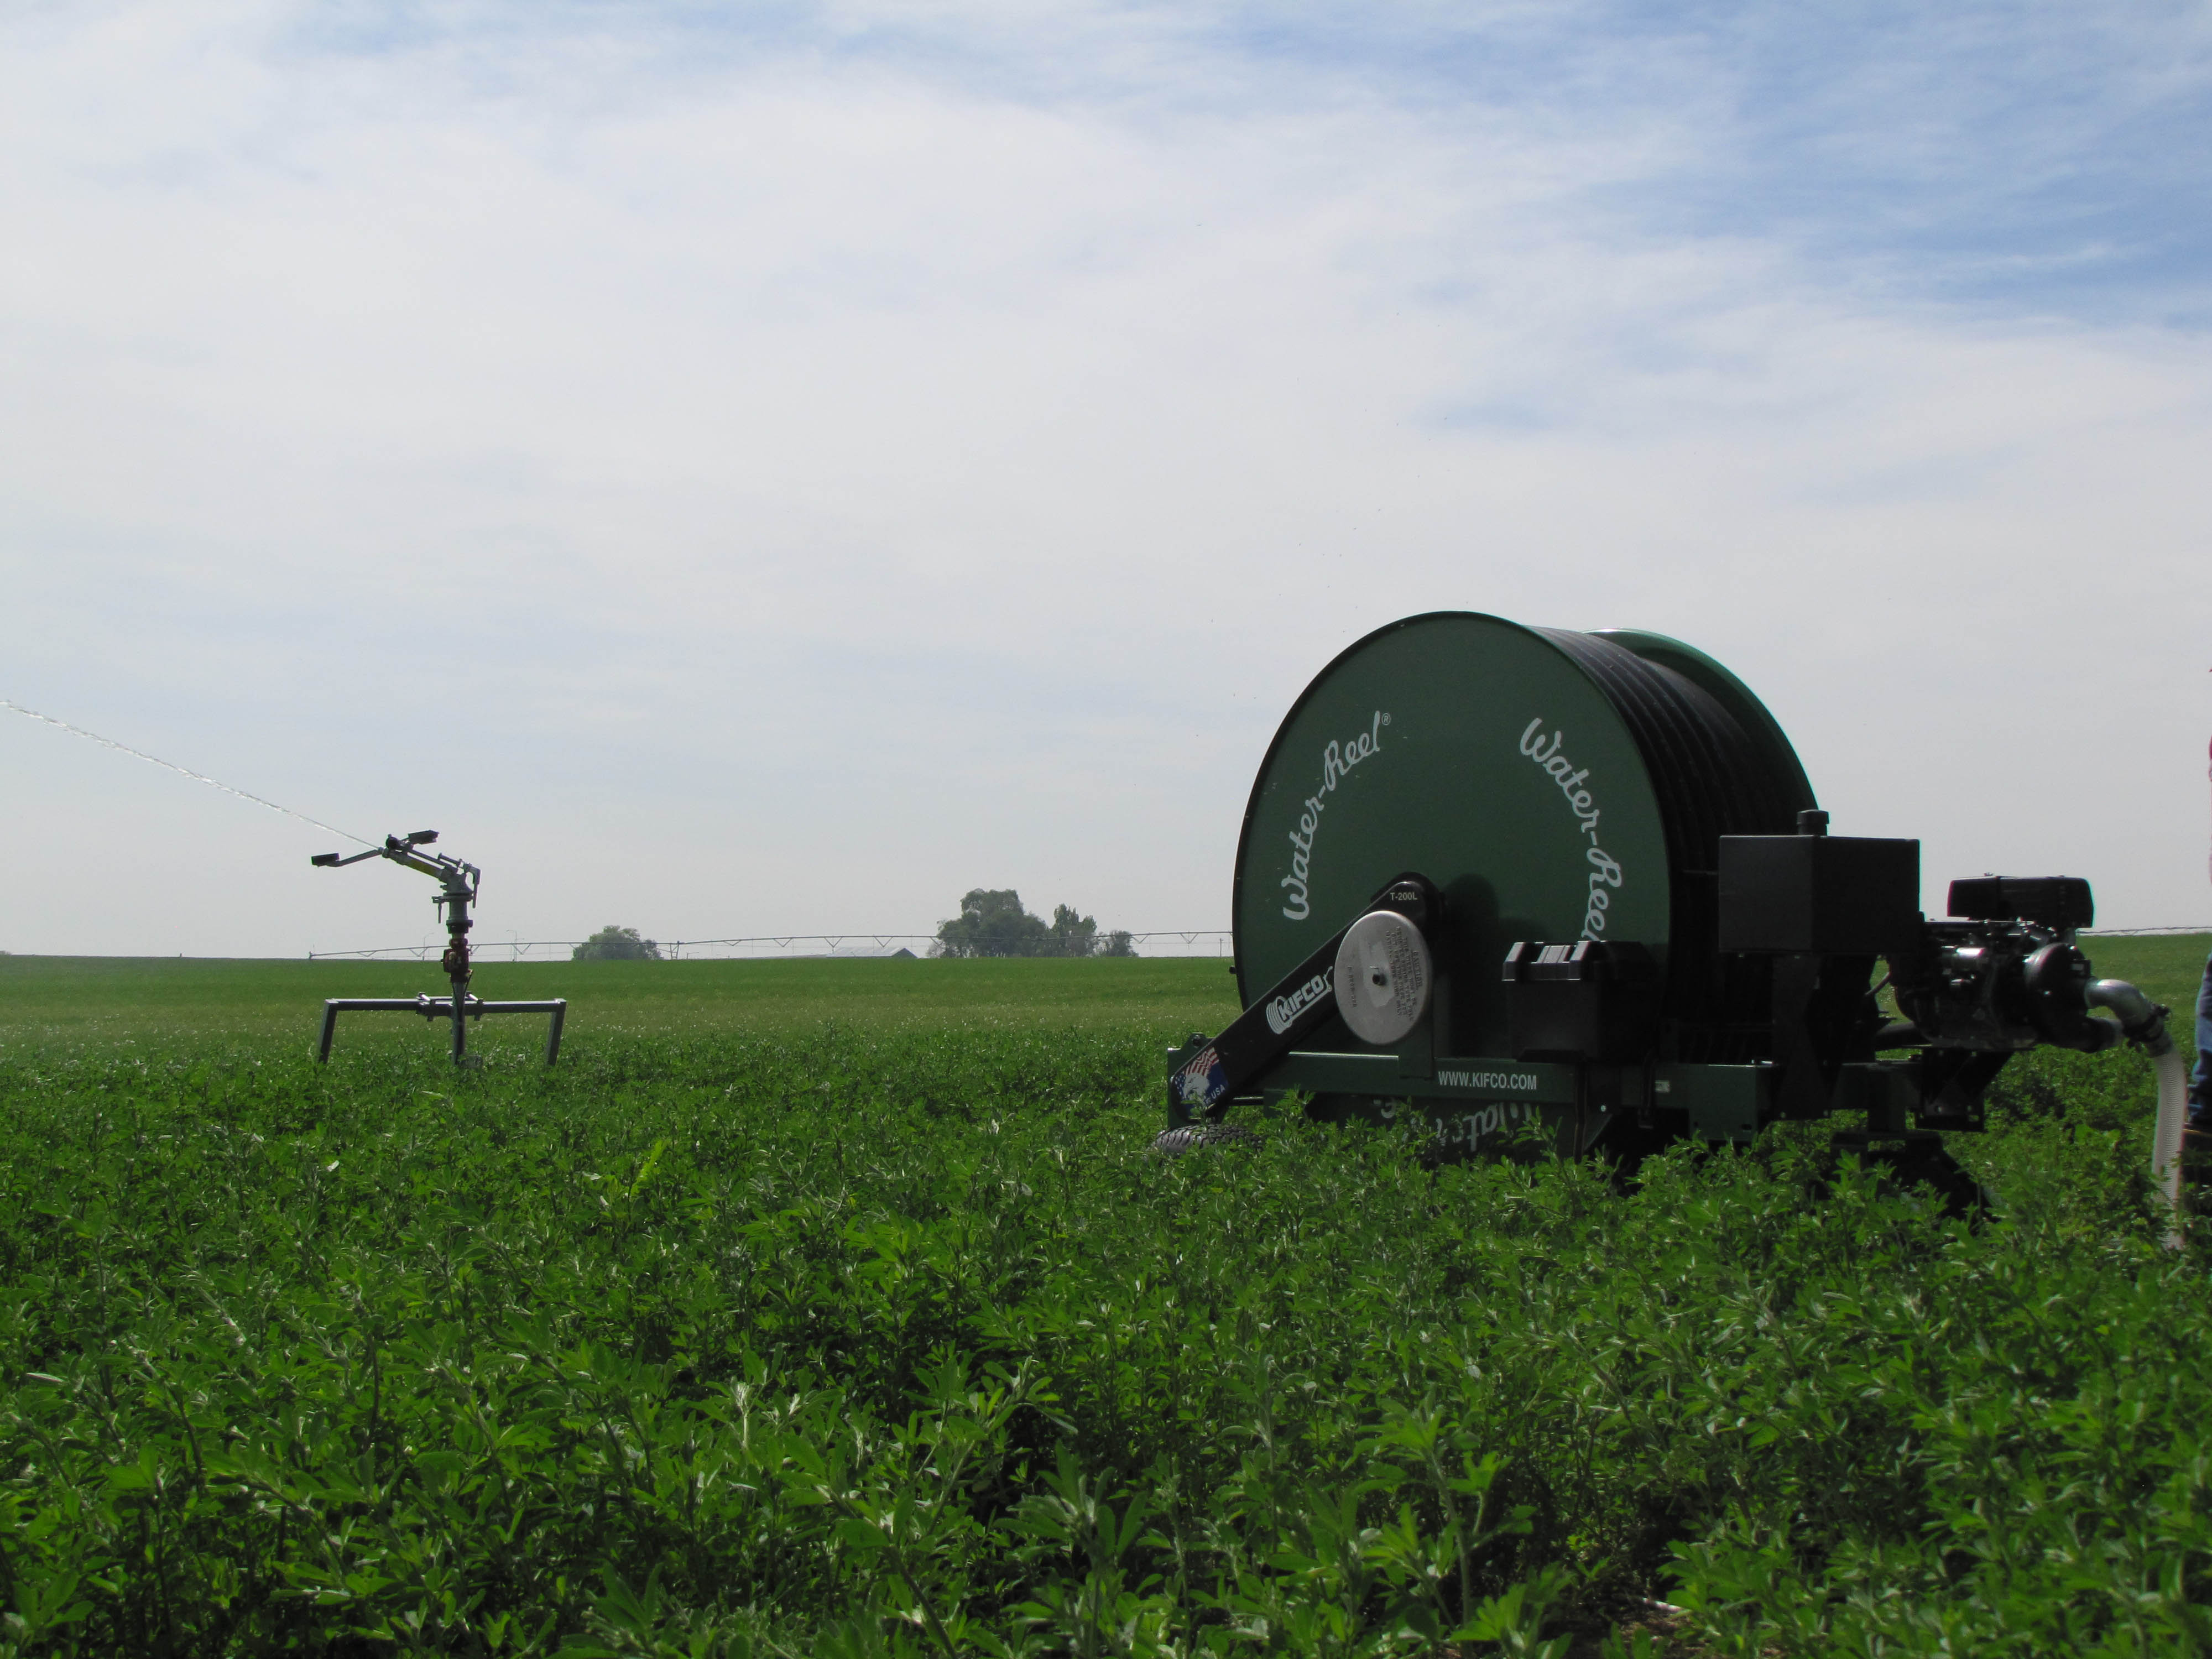 image of ag-rain water-reels b-series performing field irrigation